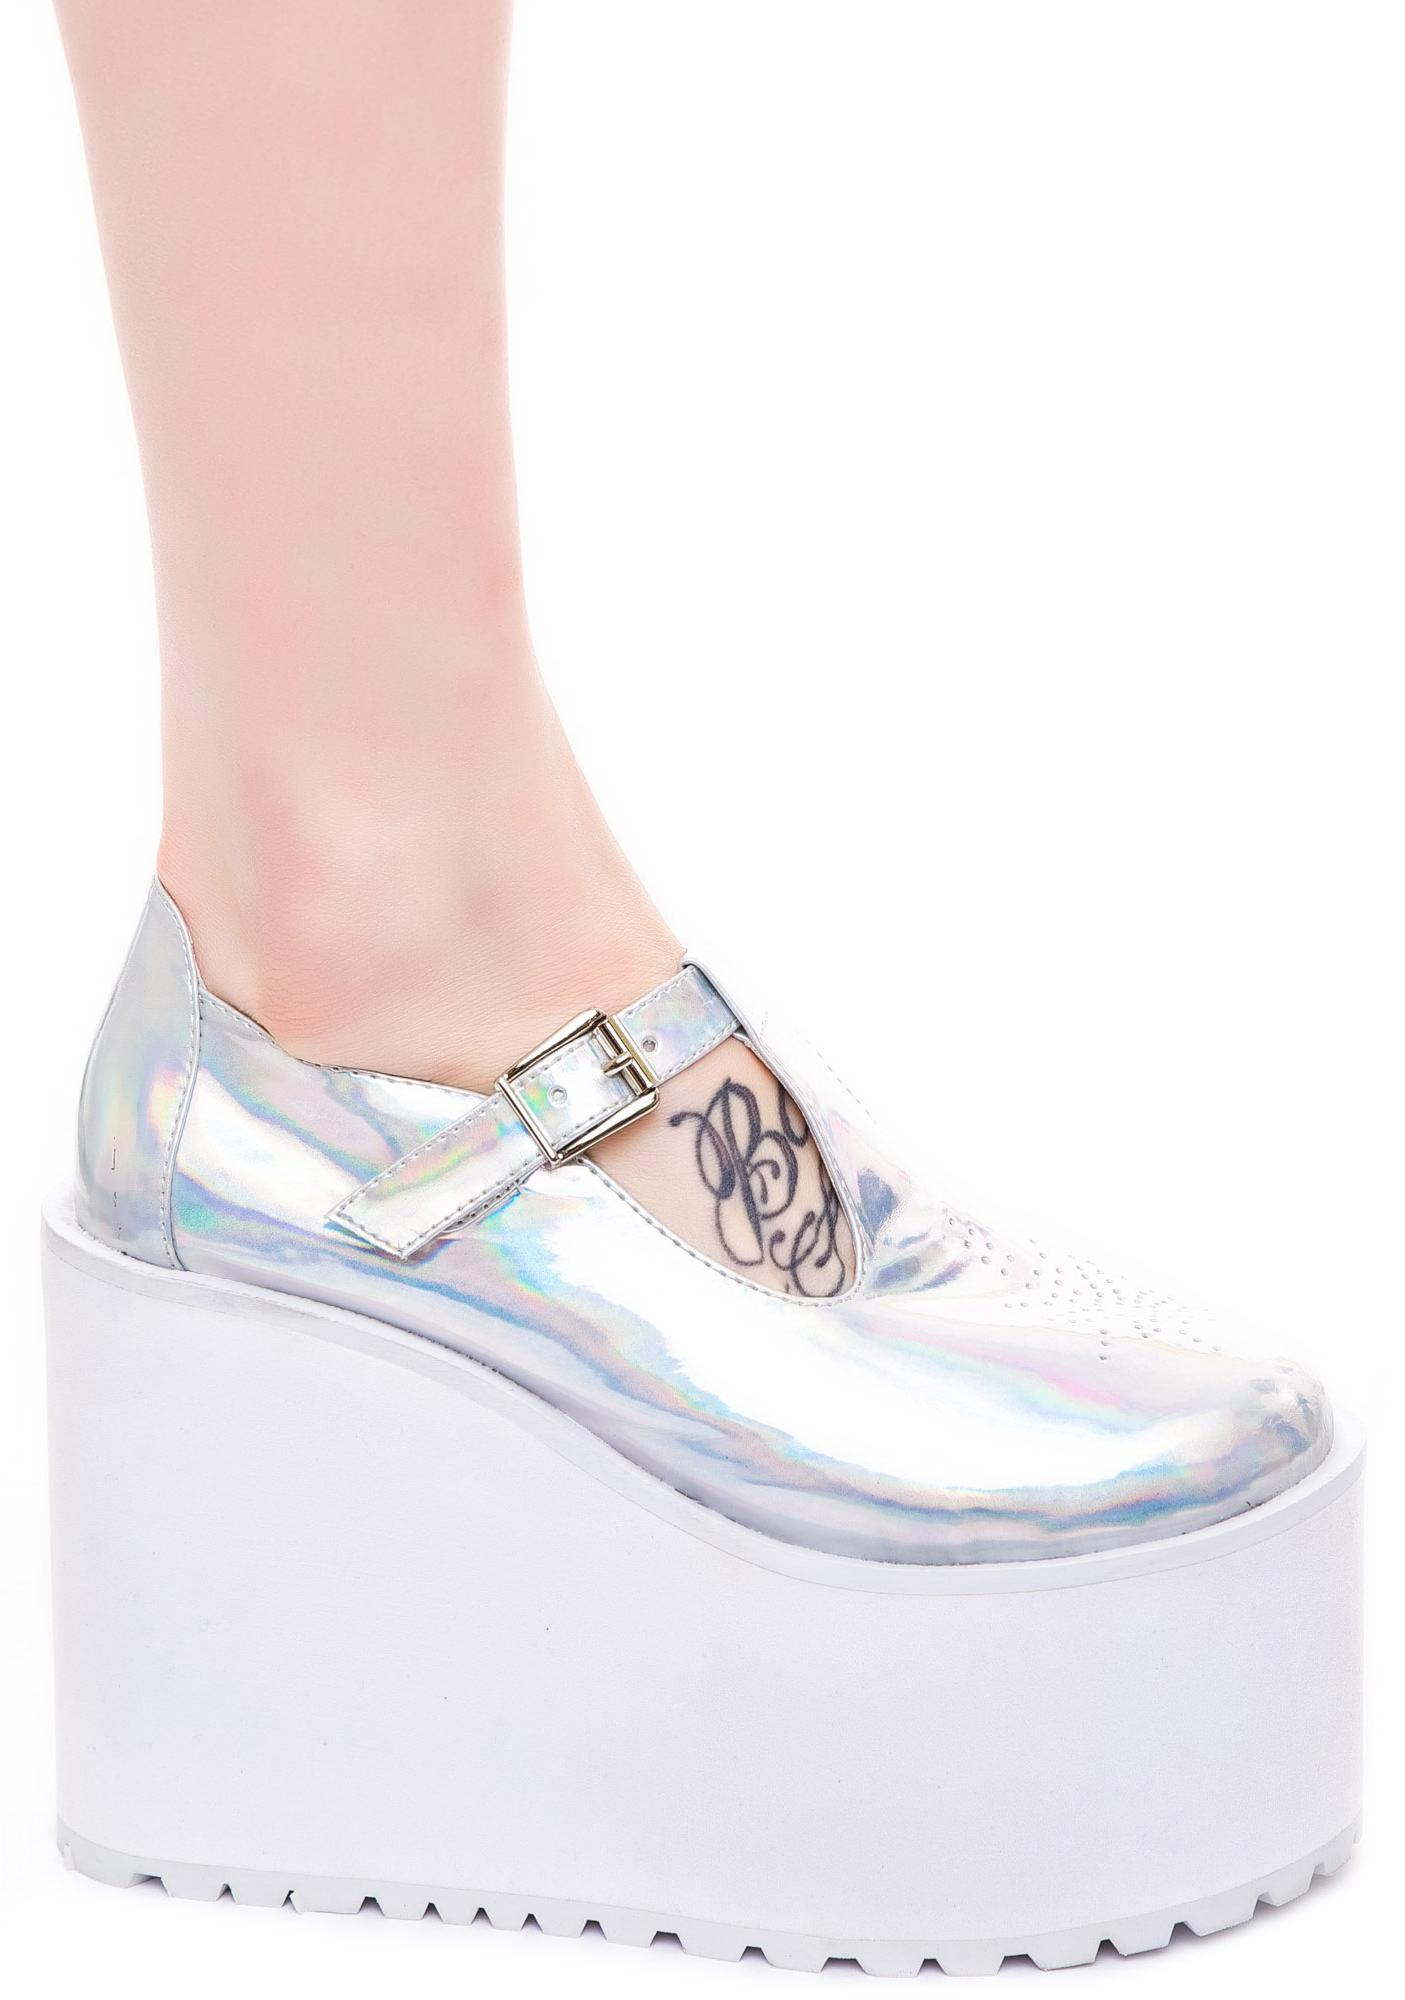 UNIF Mary Janes Shoes